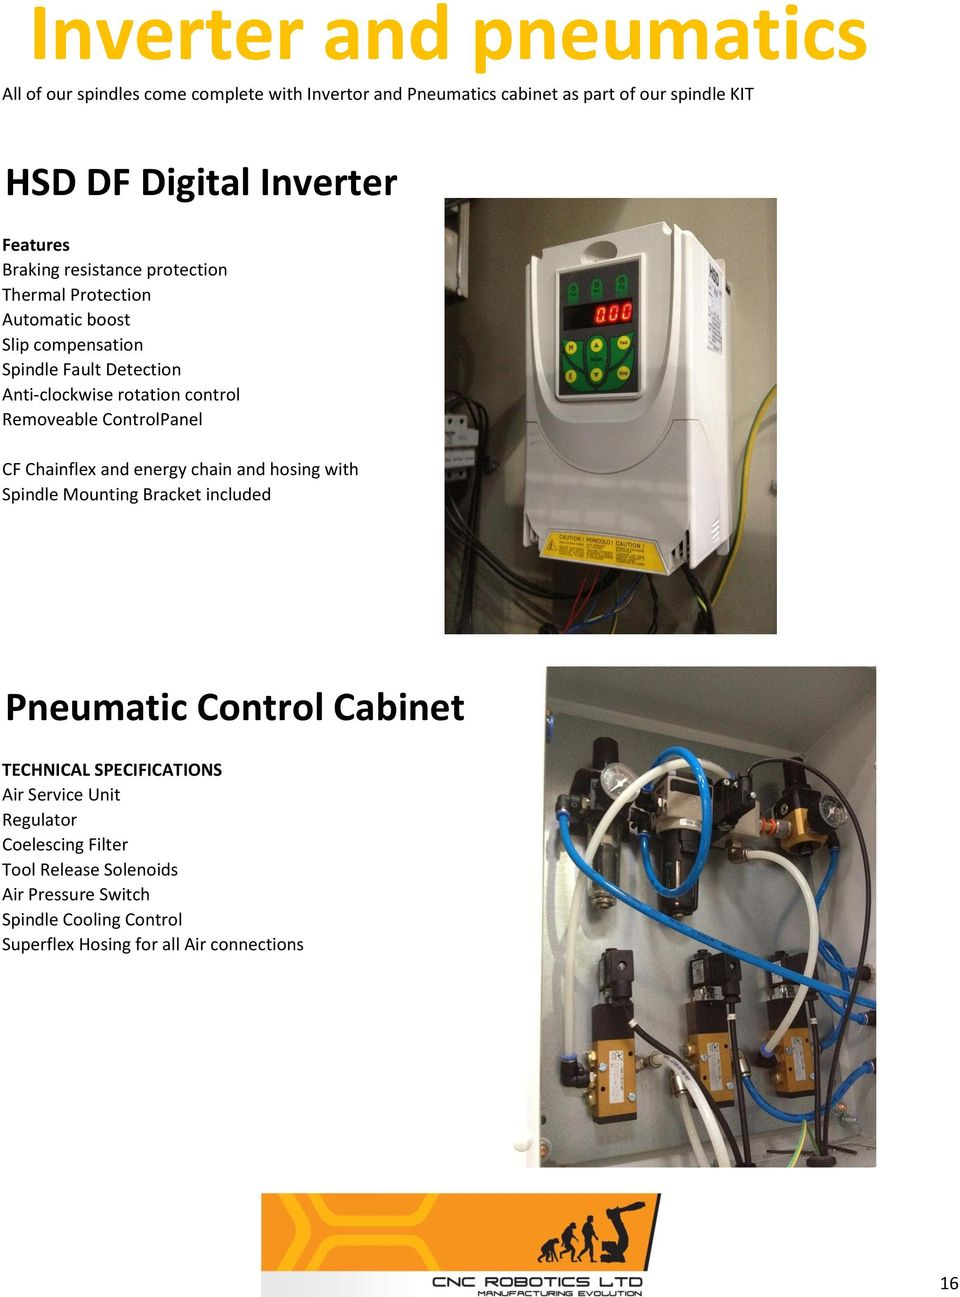 It Is Not Uncommon For A Robot With An Integrated Rotary Turntable Rotative Speed Regulator Borer Driller Controller Removeable Controlpanel Cf Chainflex And Energy Chain Hosing Spindle Mounting Bracket Included Pneumatic Control